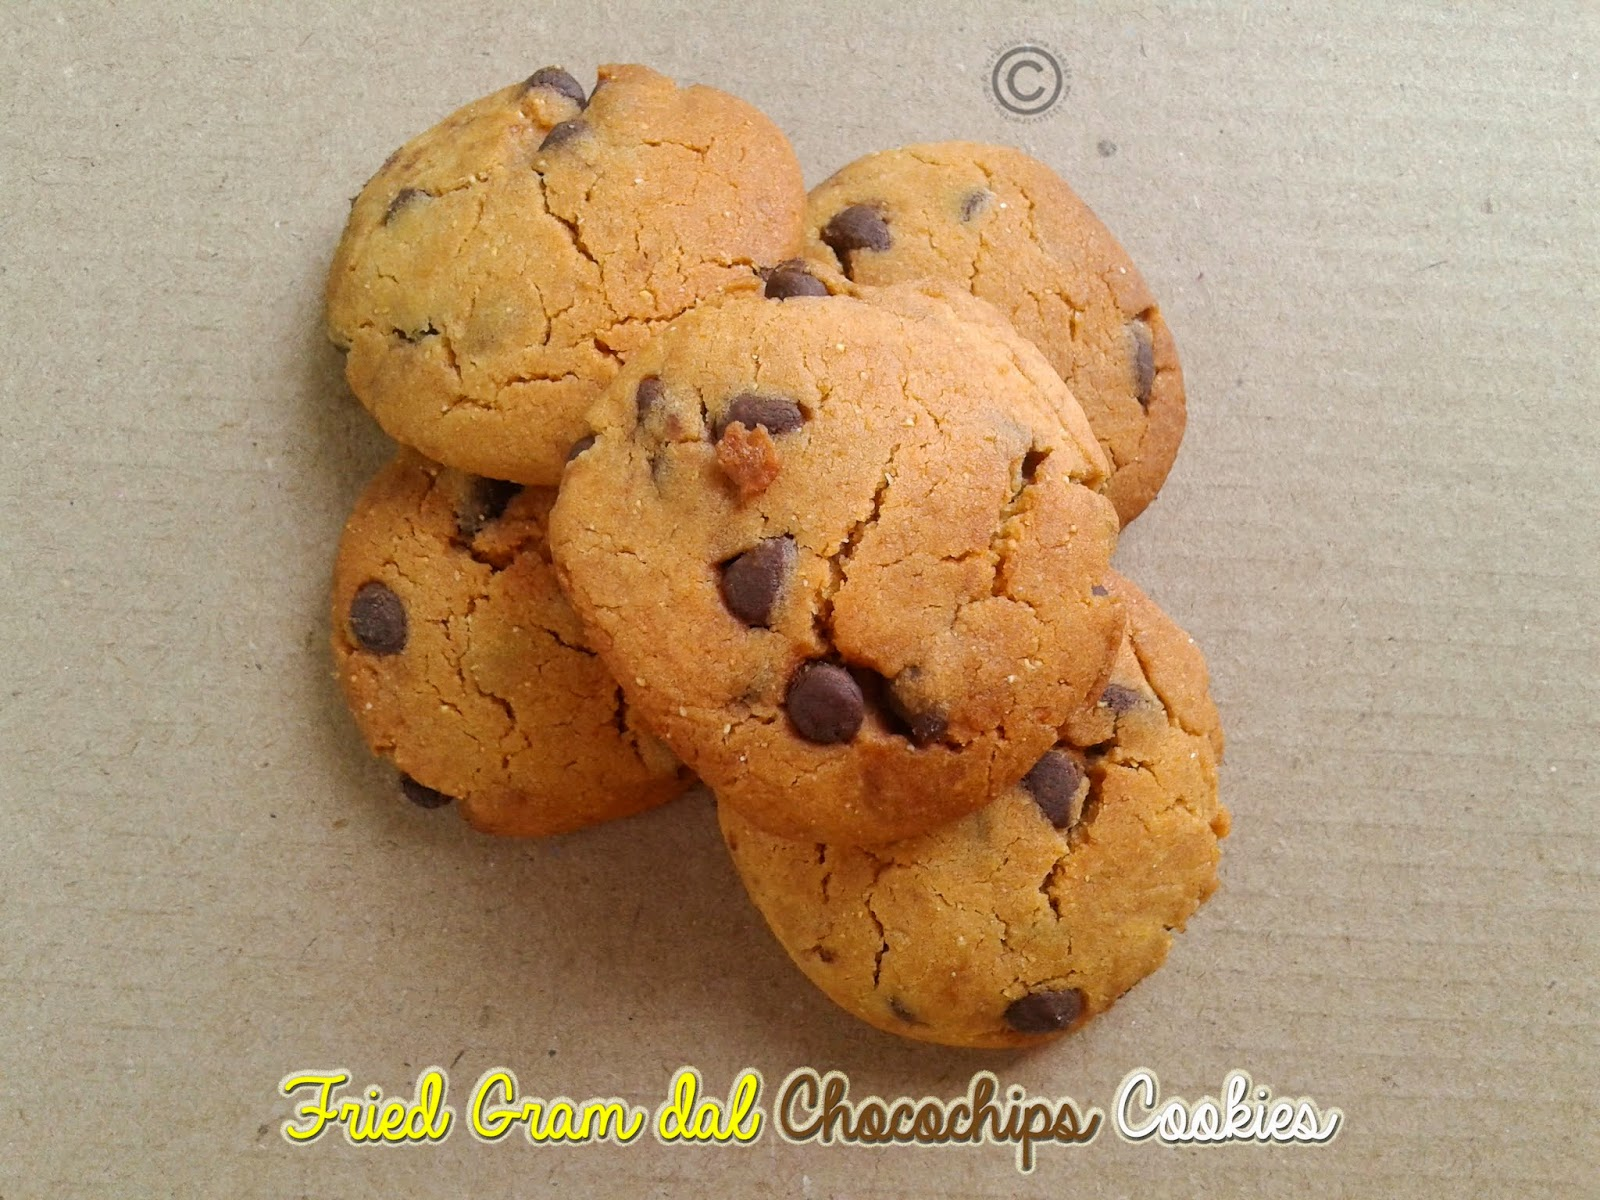 vegan-chocochips-cookies